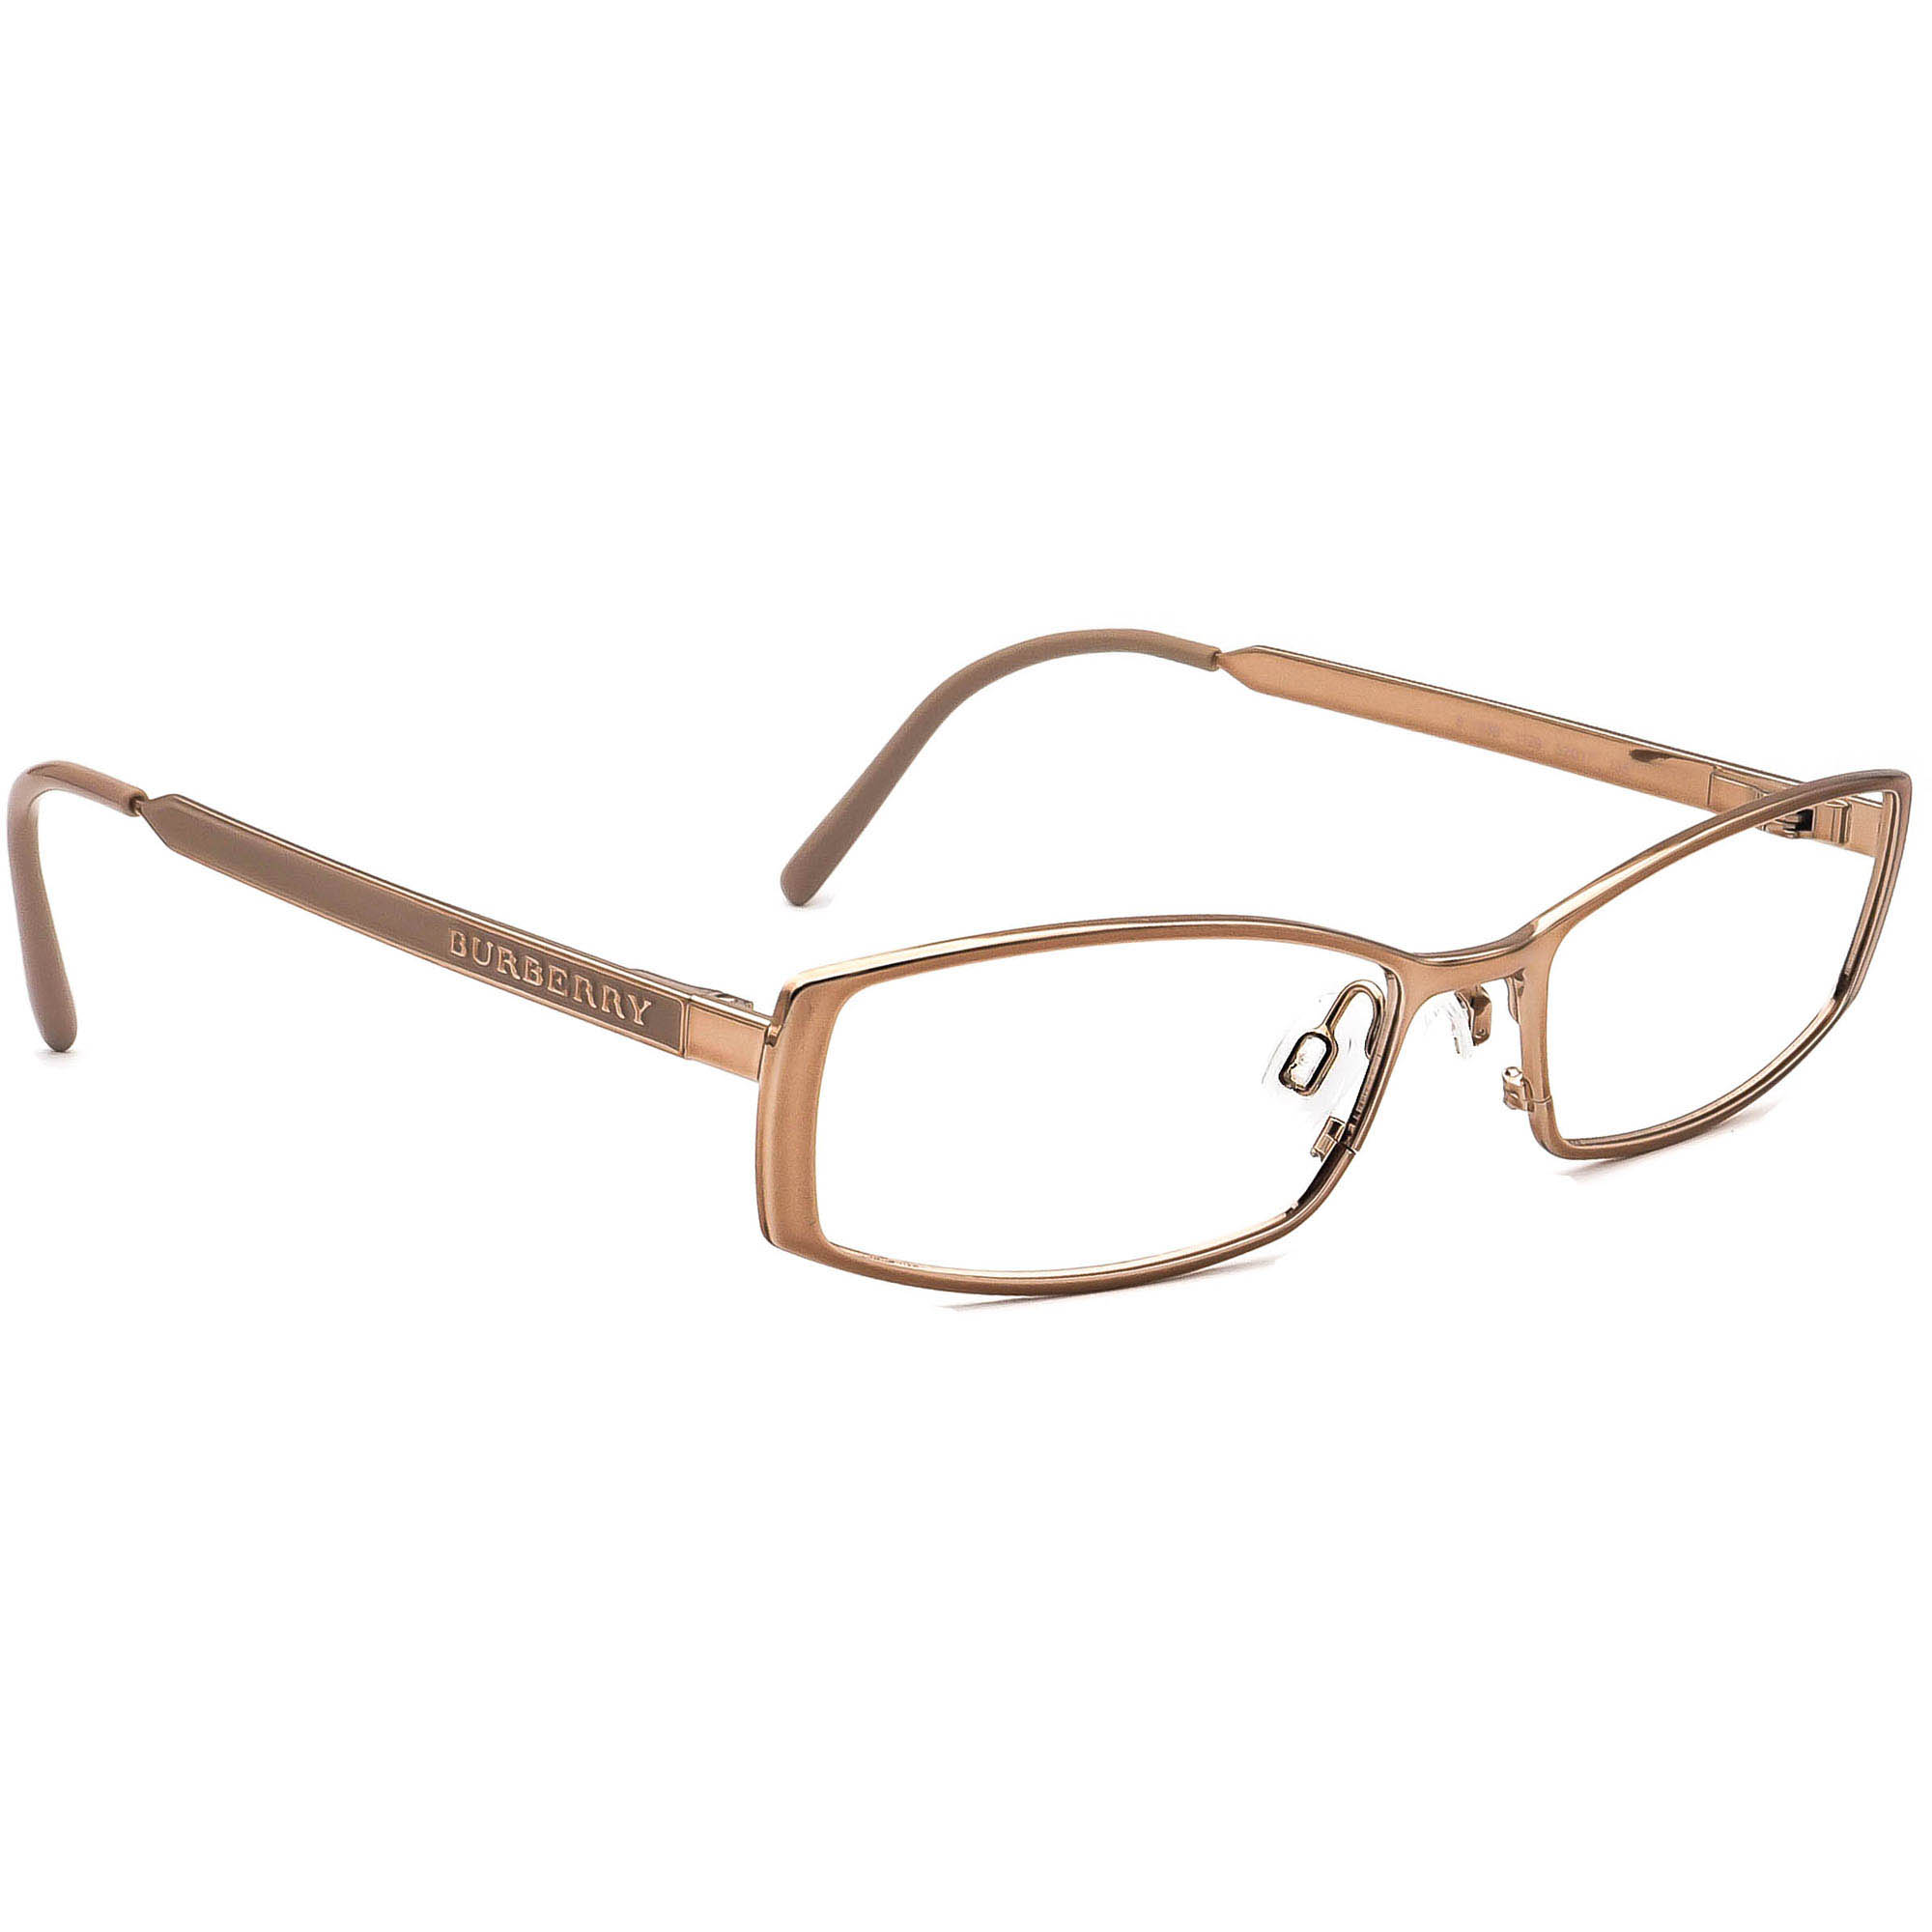 Burberry B 1238 1129 Eyeglasses